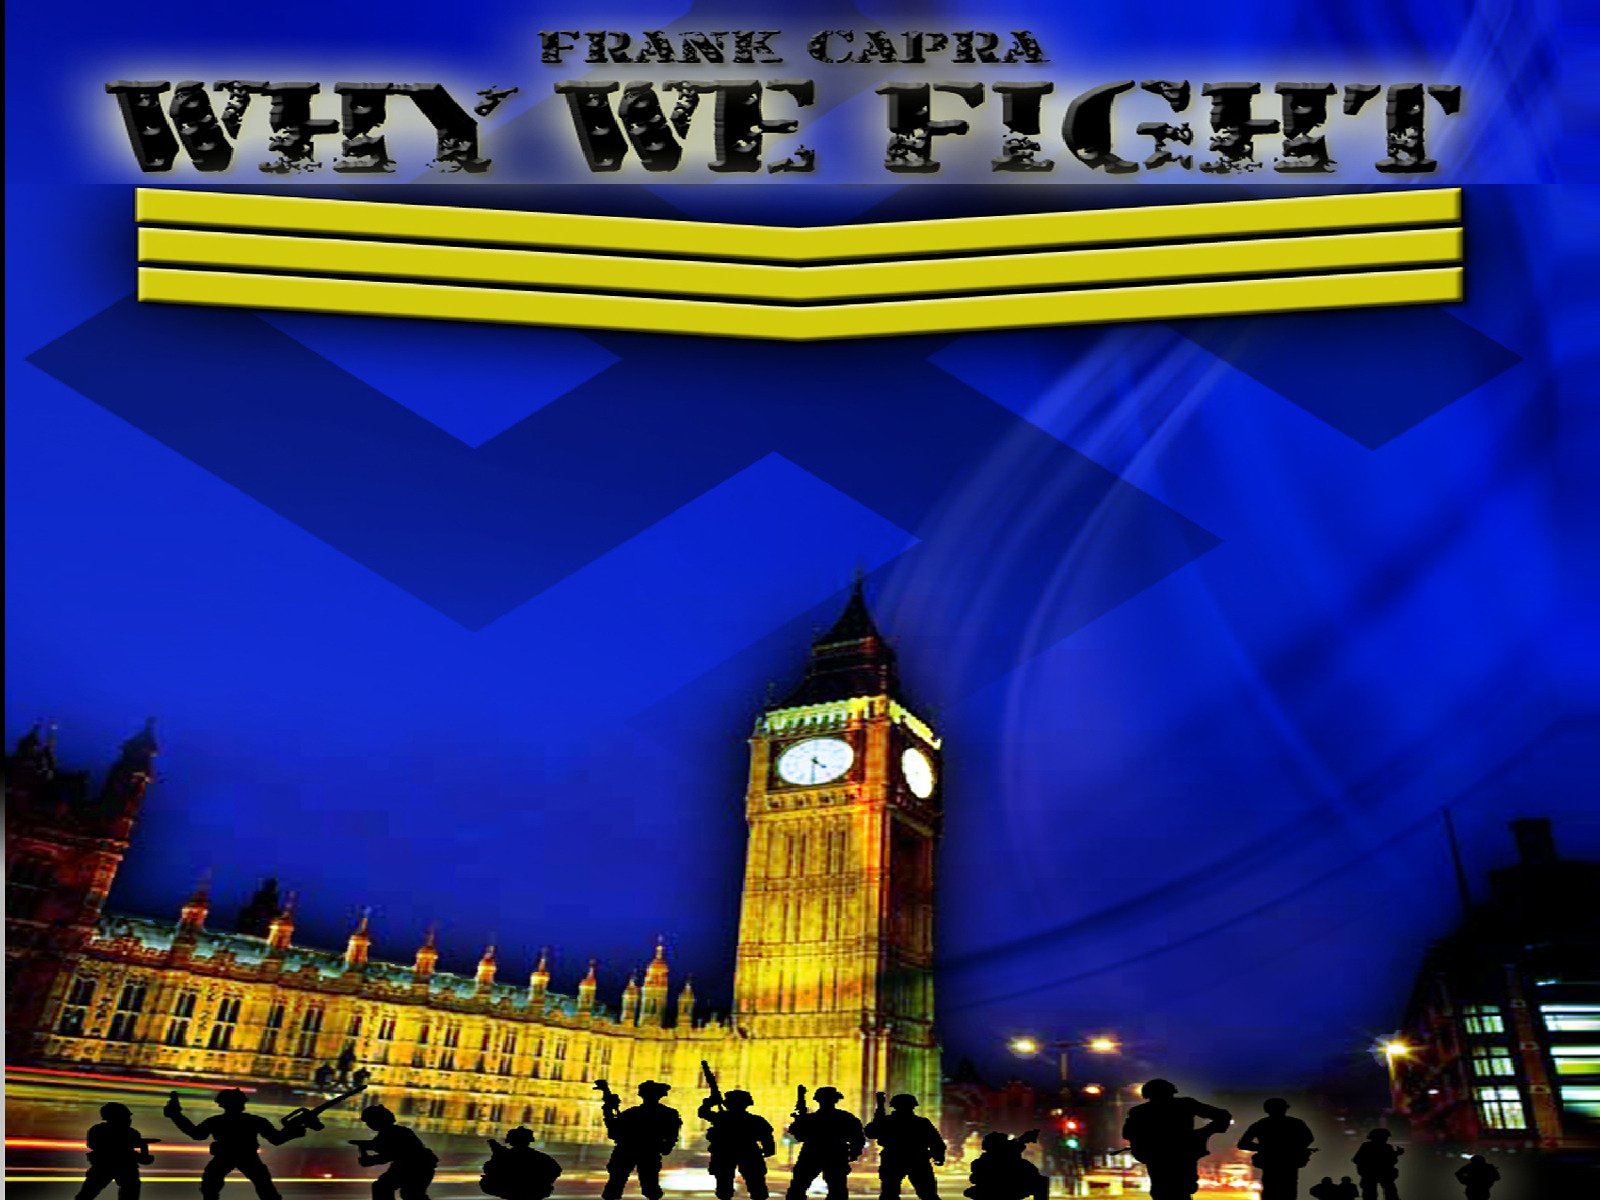 Why We Fight - Frank Capra's award winning series on Amazon Prime Video UK